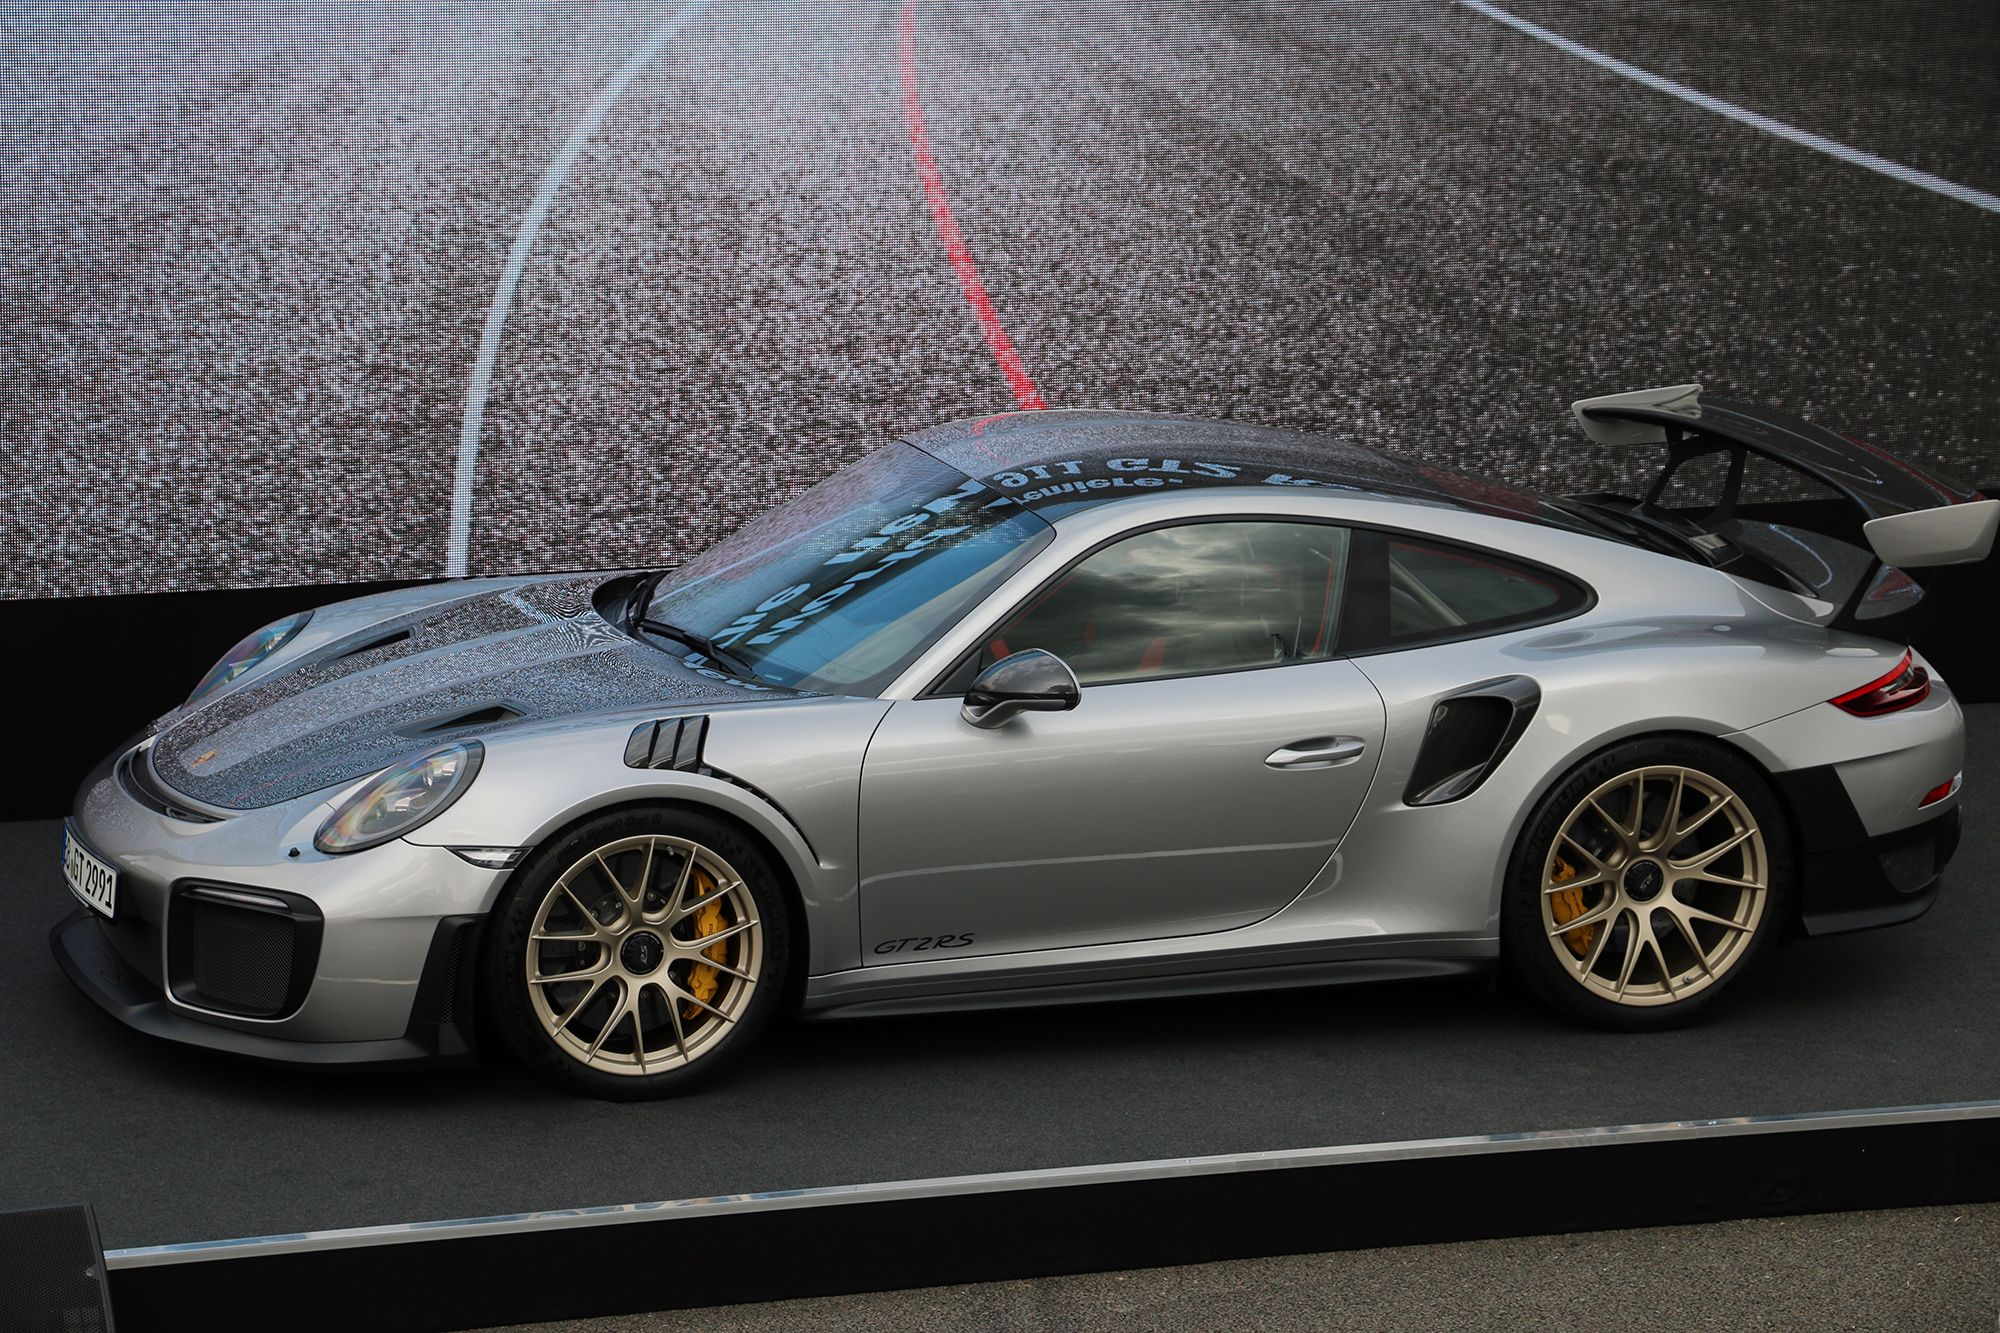 img-6781-jpg-1498843658 Breathtaking How Many Porsche 911 Gt2 Were Made Cars Trend